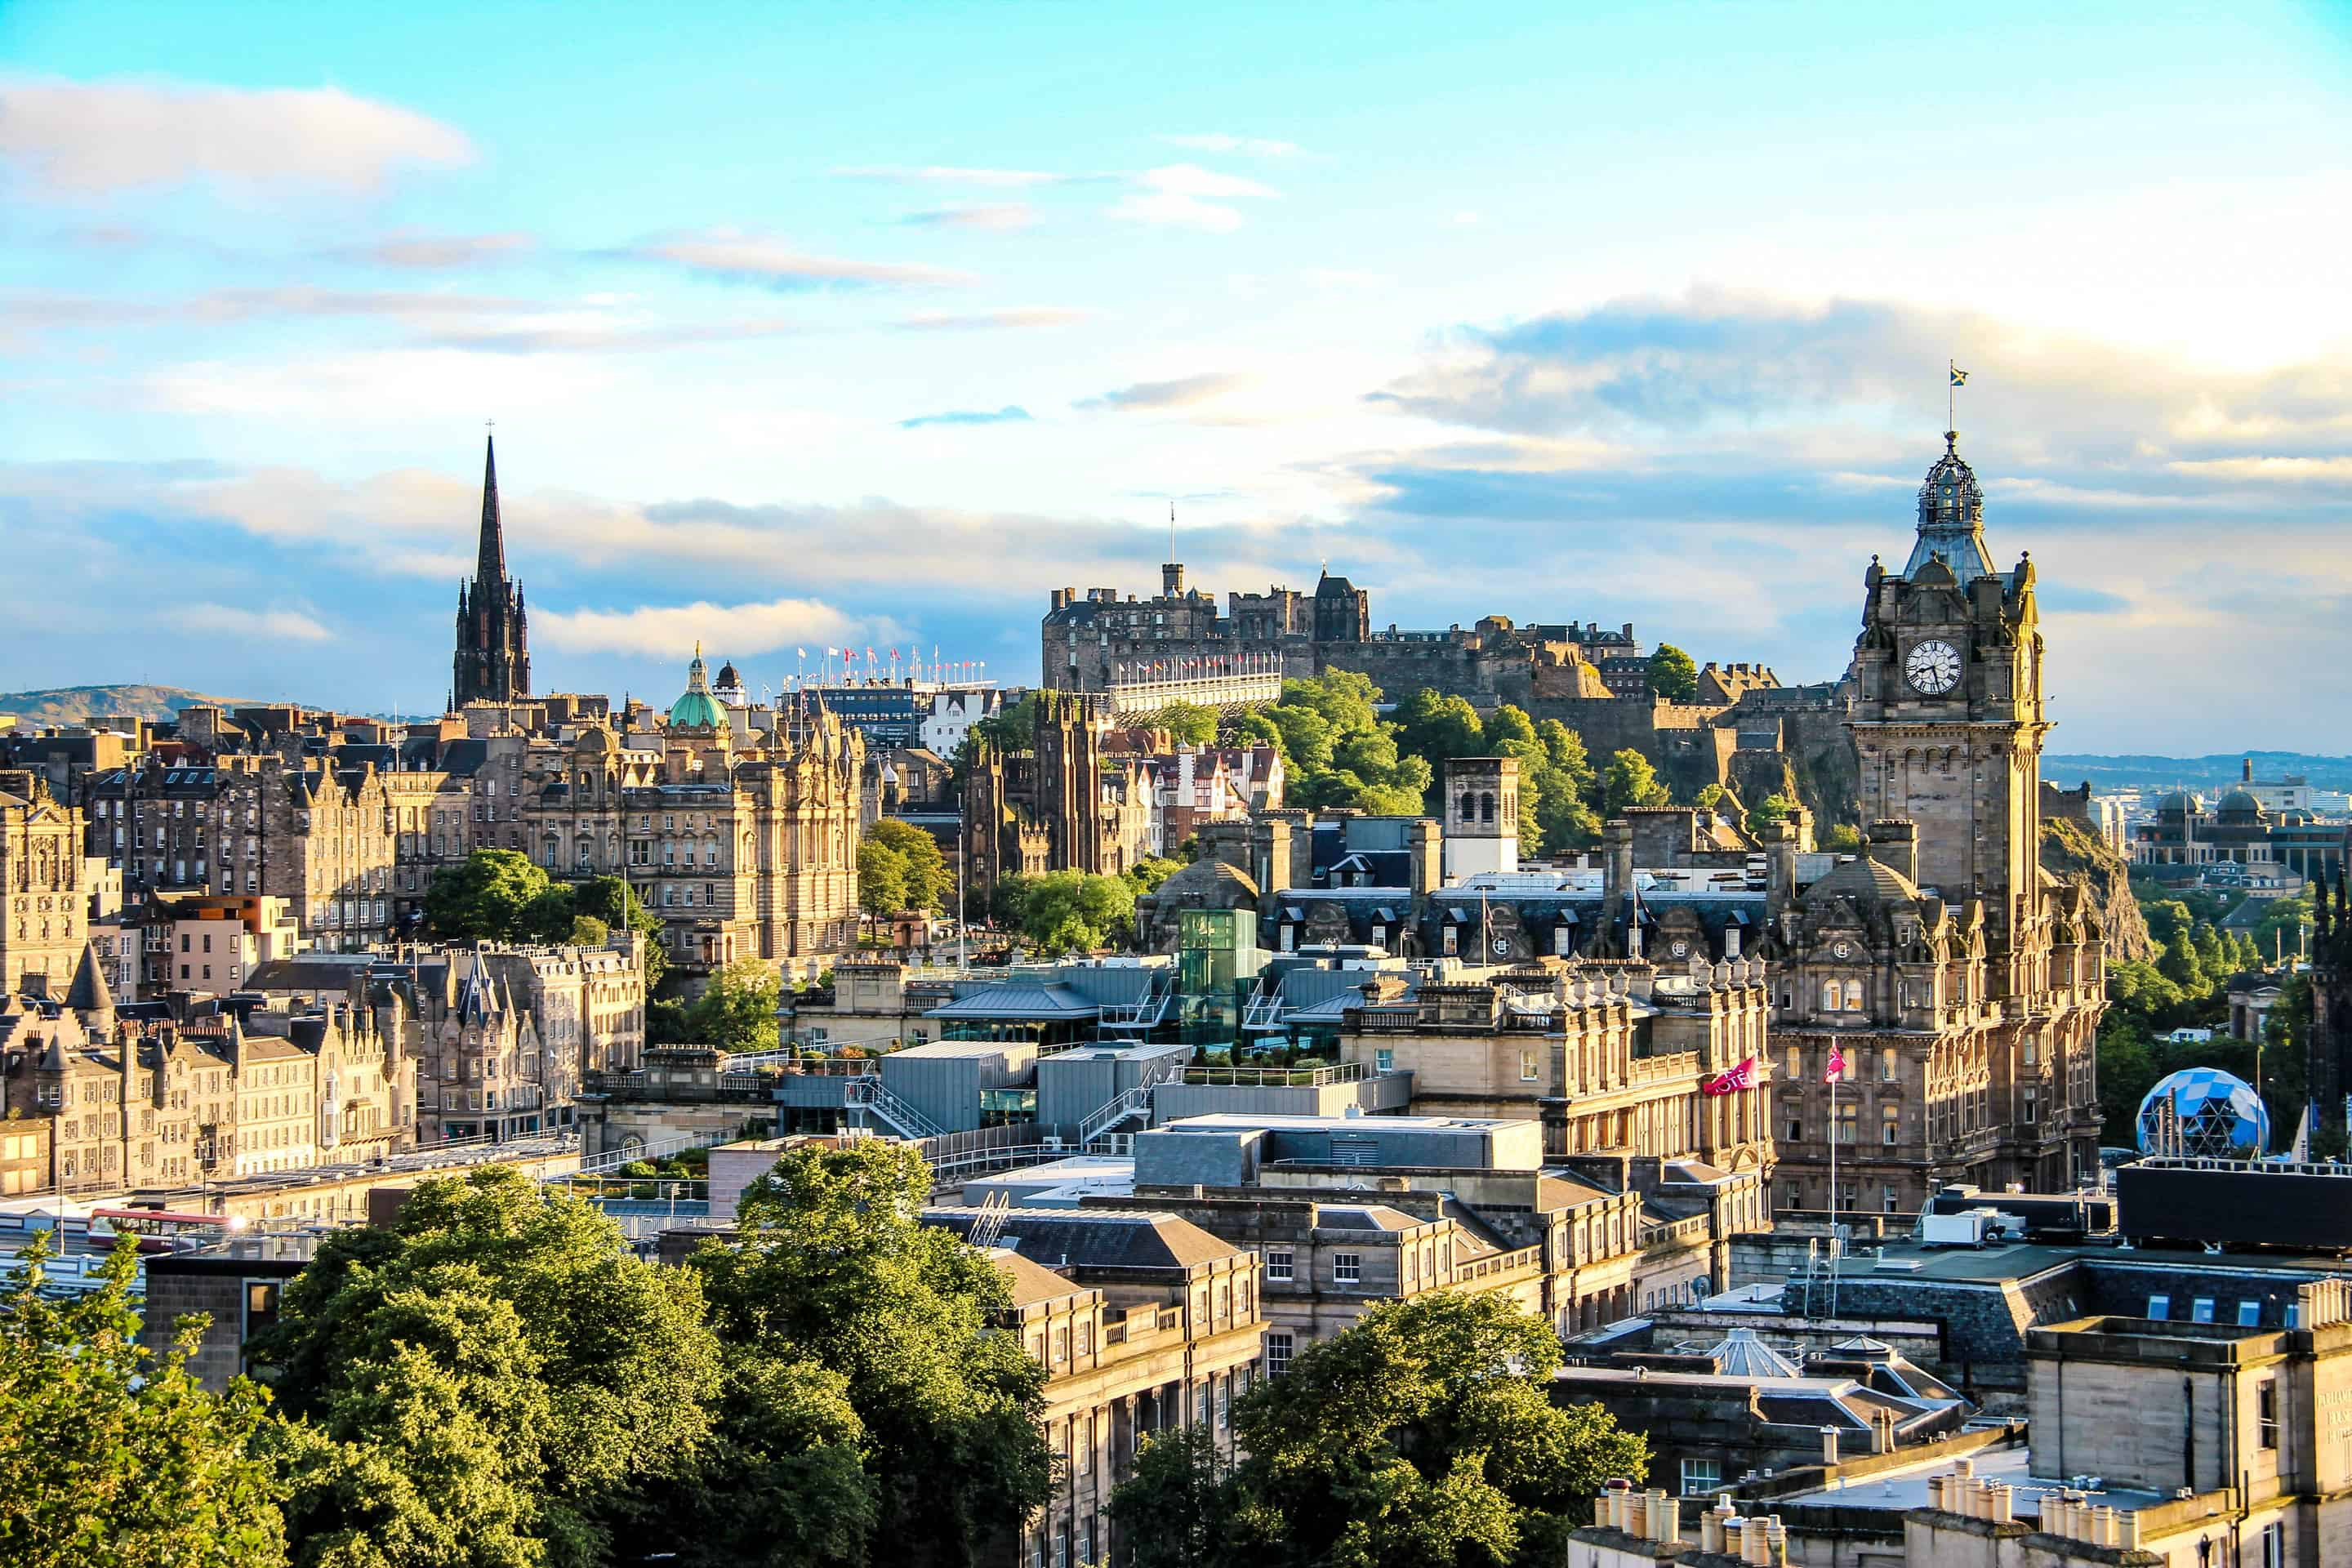 5 interesting things to see and do in Edinburgh while at the WEM Conference